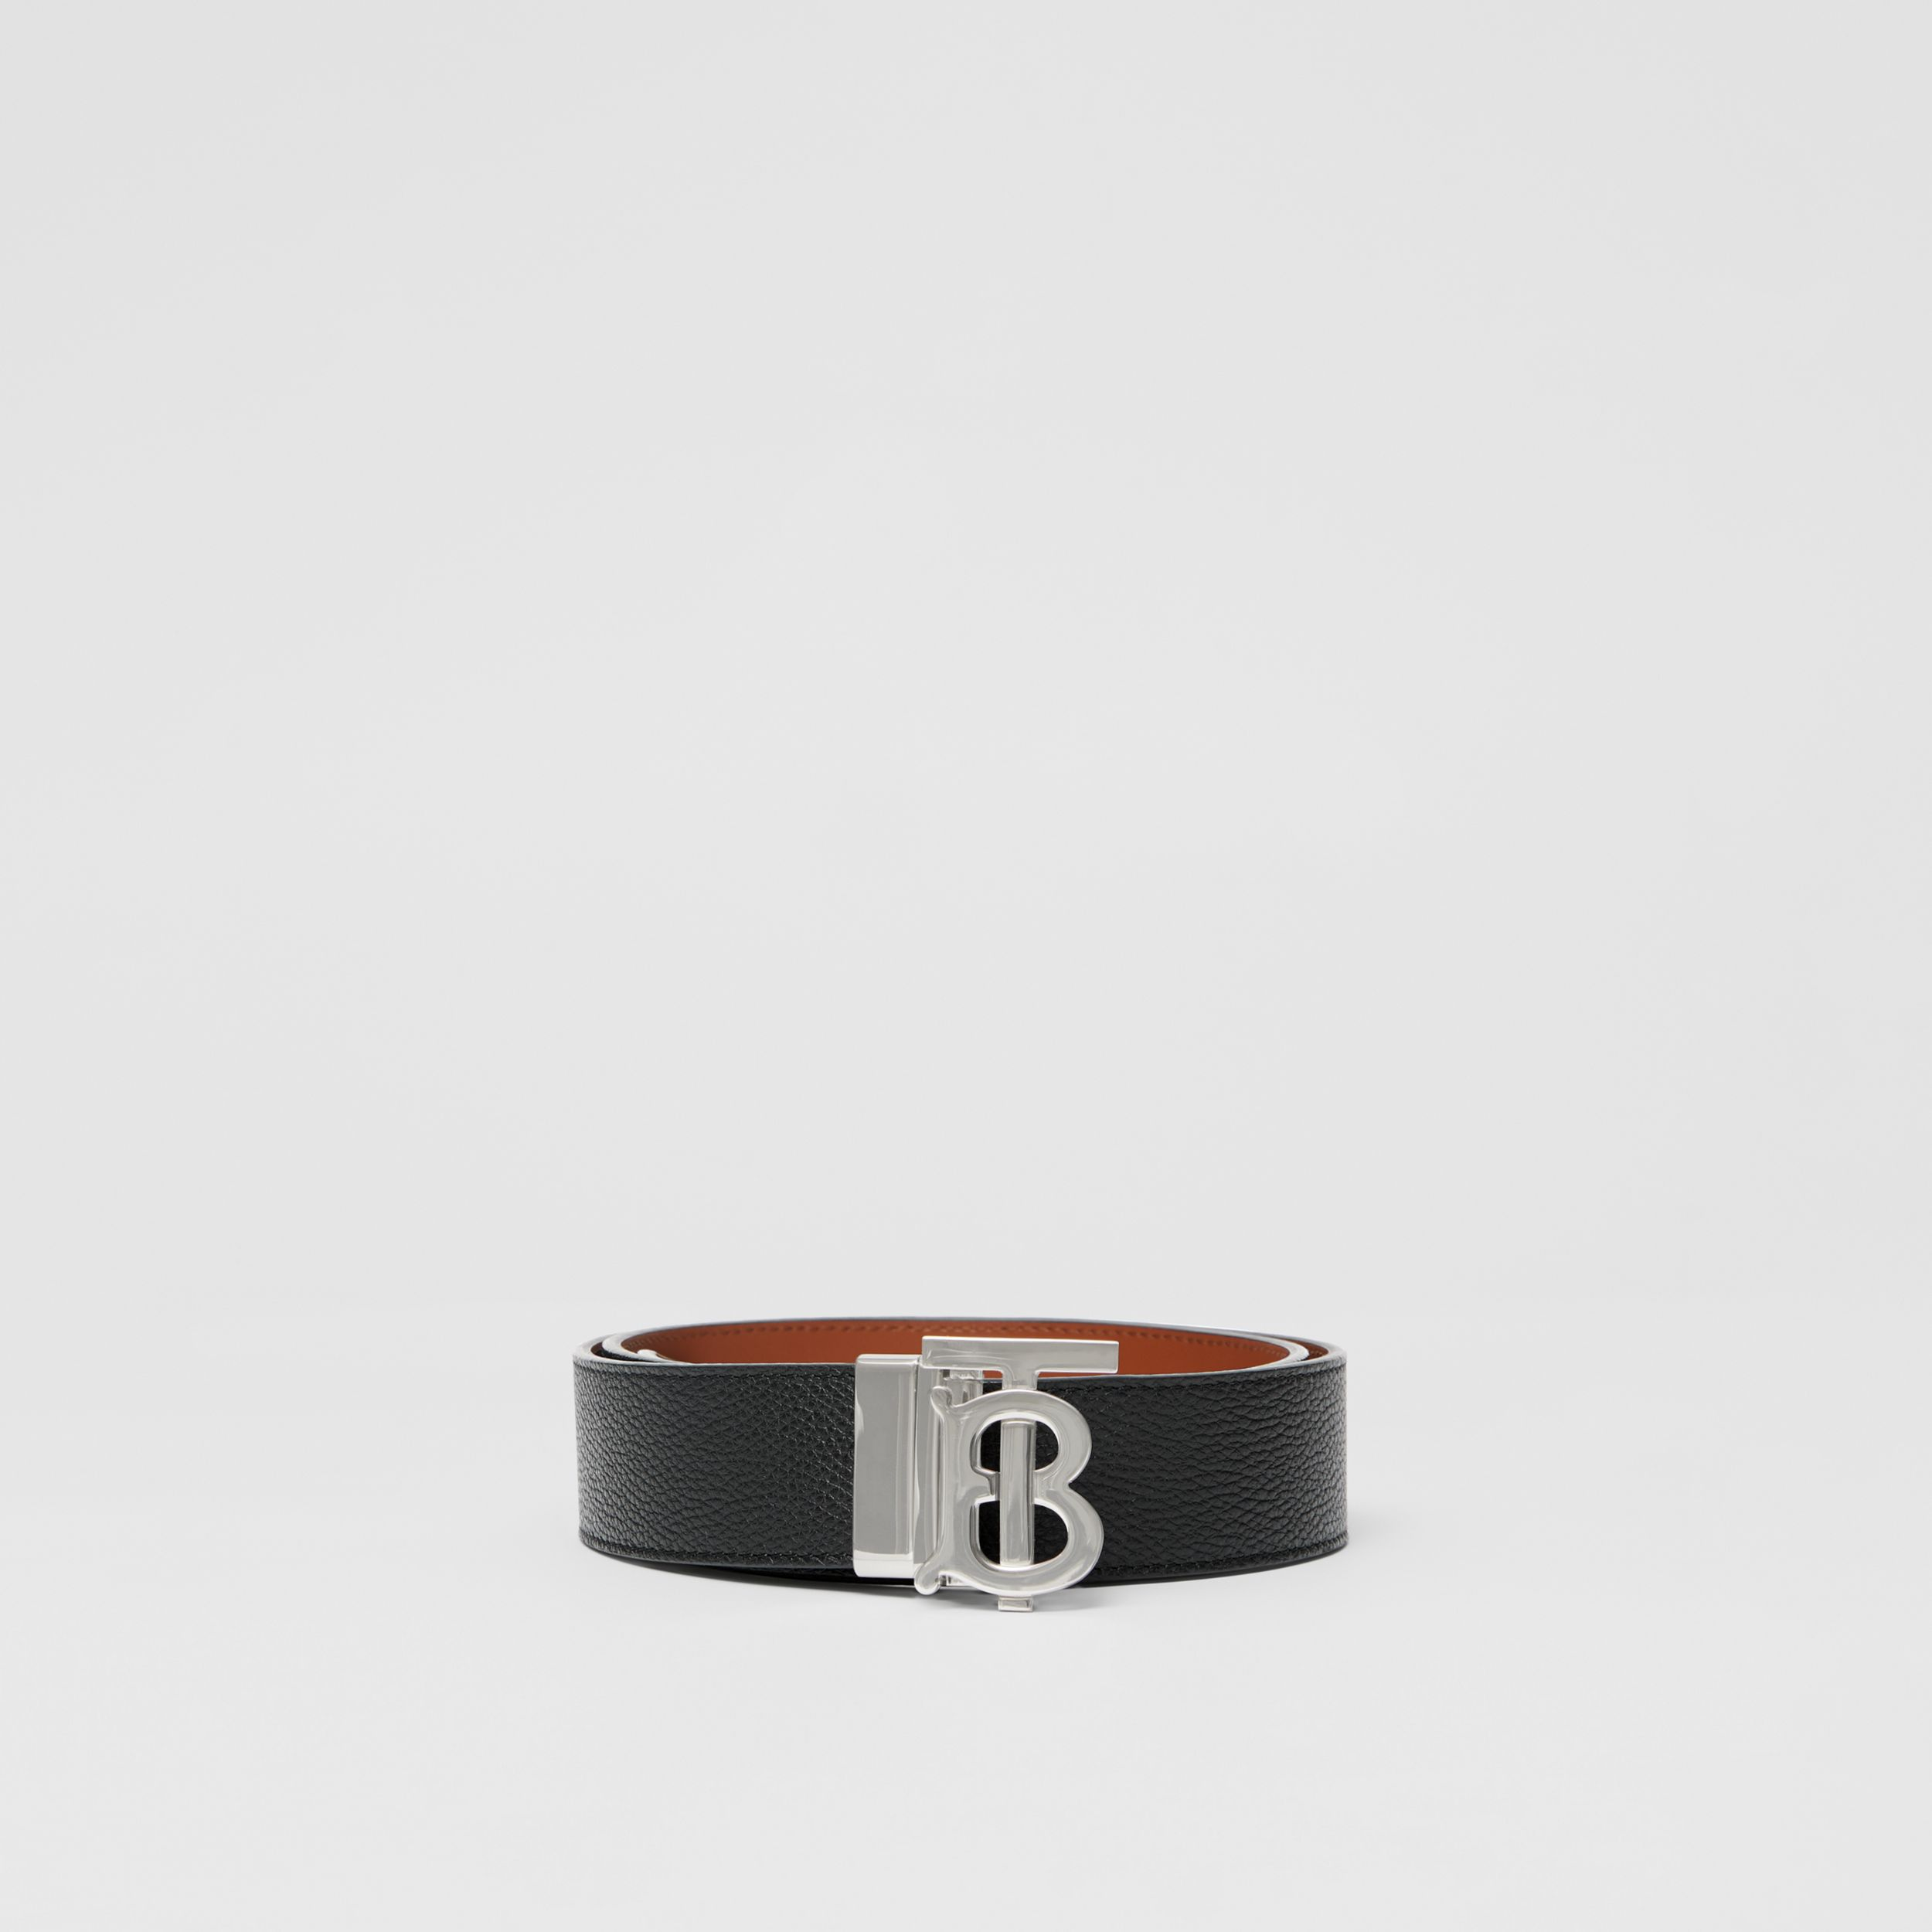 Reversible Monogram Motif Leather Belt in Black/tan - Men | Burberry - 4